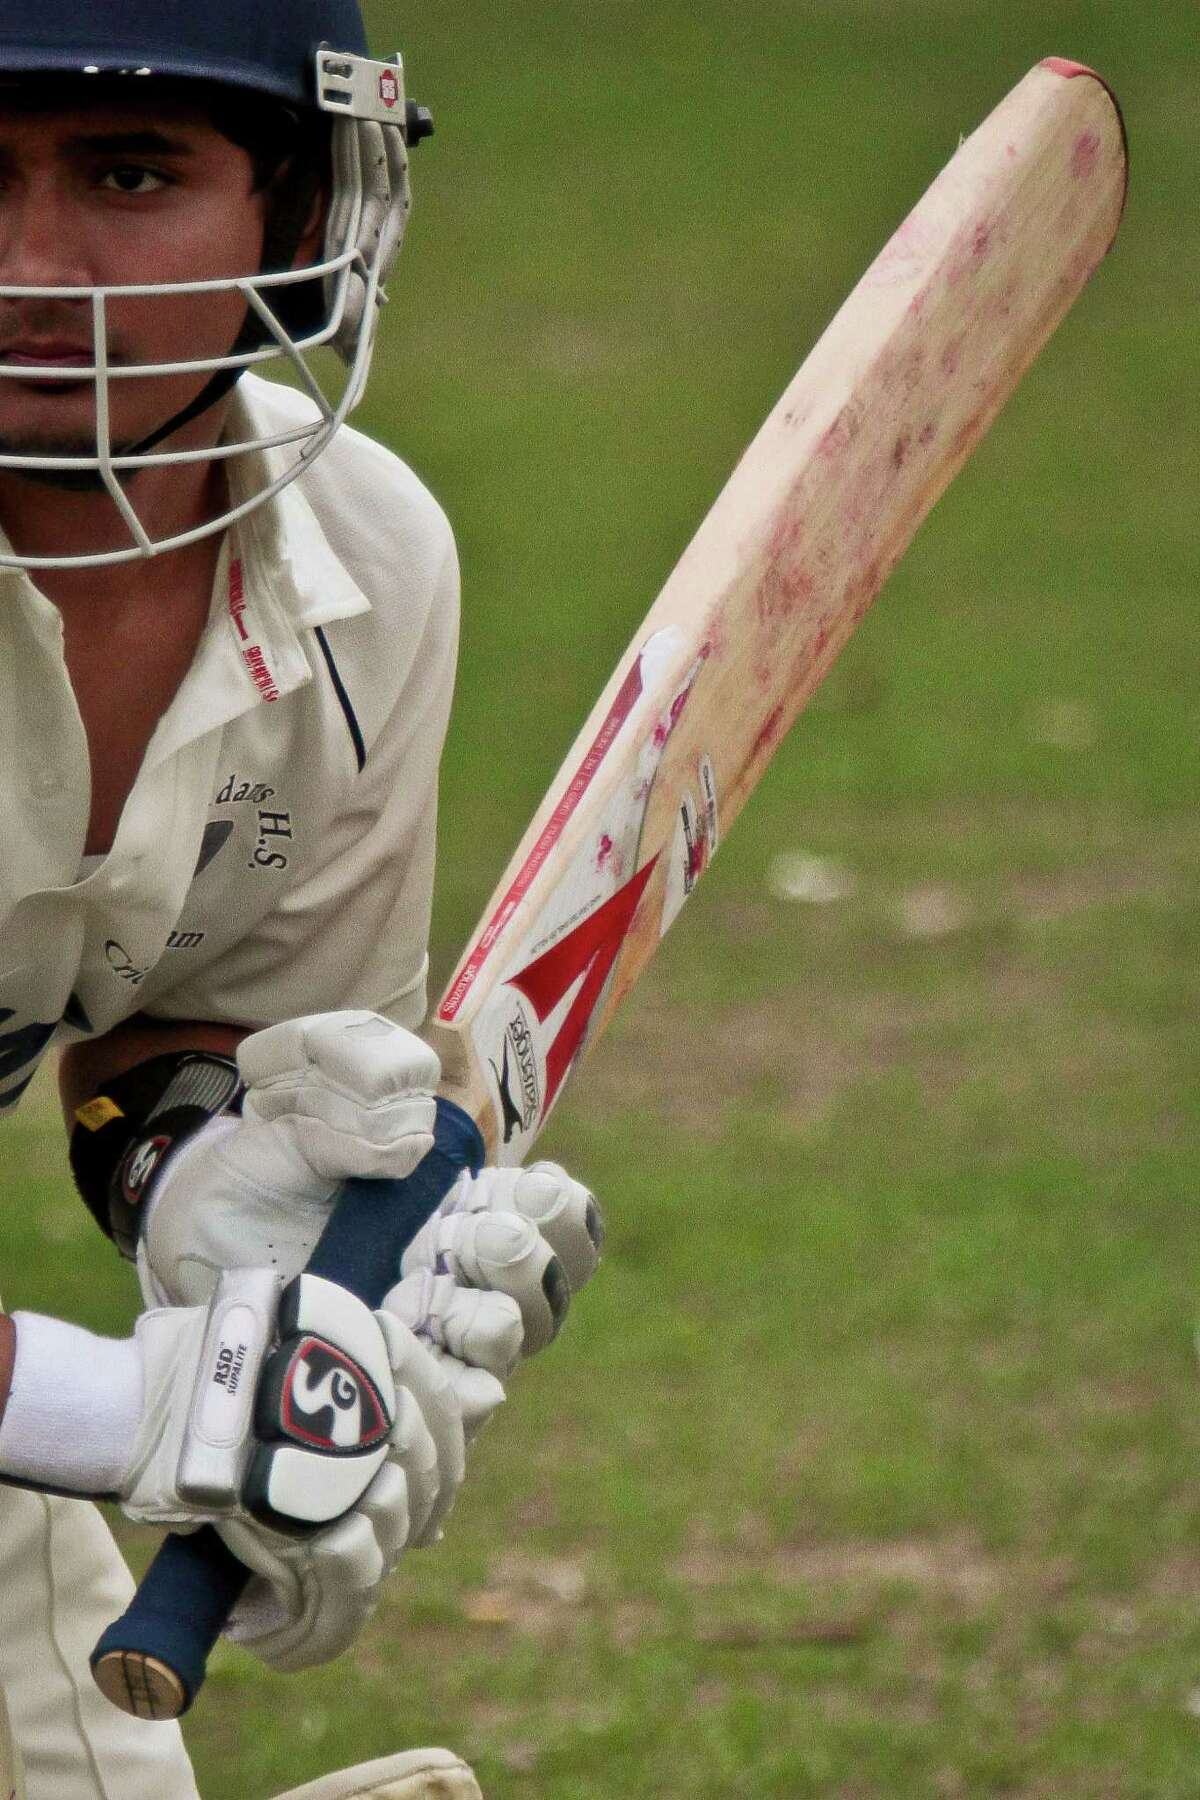 Cricket is surging in popularity around the country. In New York, there aren't enough fields to accommodate all the matches as more and more immigrants from cricket-playing countries move to the U.S. bringing their love for the game with them. In this May 12, 2014 photo, John Adams High School batsman Tazul Uddin raises his bat during a warm-up before playing against Midwood High School in a Public School Athletic League cricket match at Marine Park in the Brooklyn borough of New York. The bat typically consists of a cane handle for gripping attached to a flat-fronted willow-wood blade, treated with raw linseed oil, for striking the ball. (AP Photo/Bebeto Matthews) ORG XMIT: NYBM704